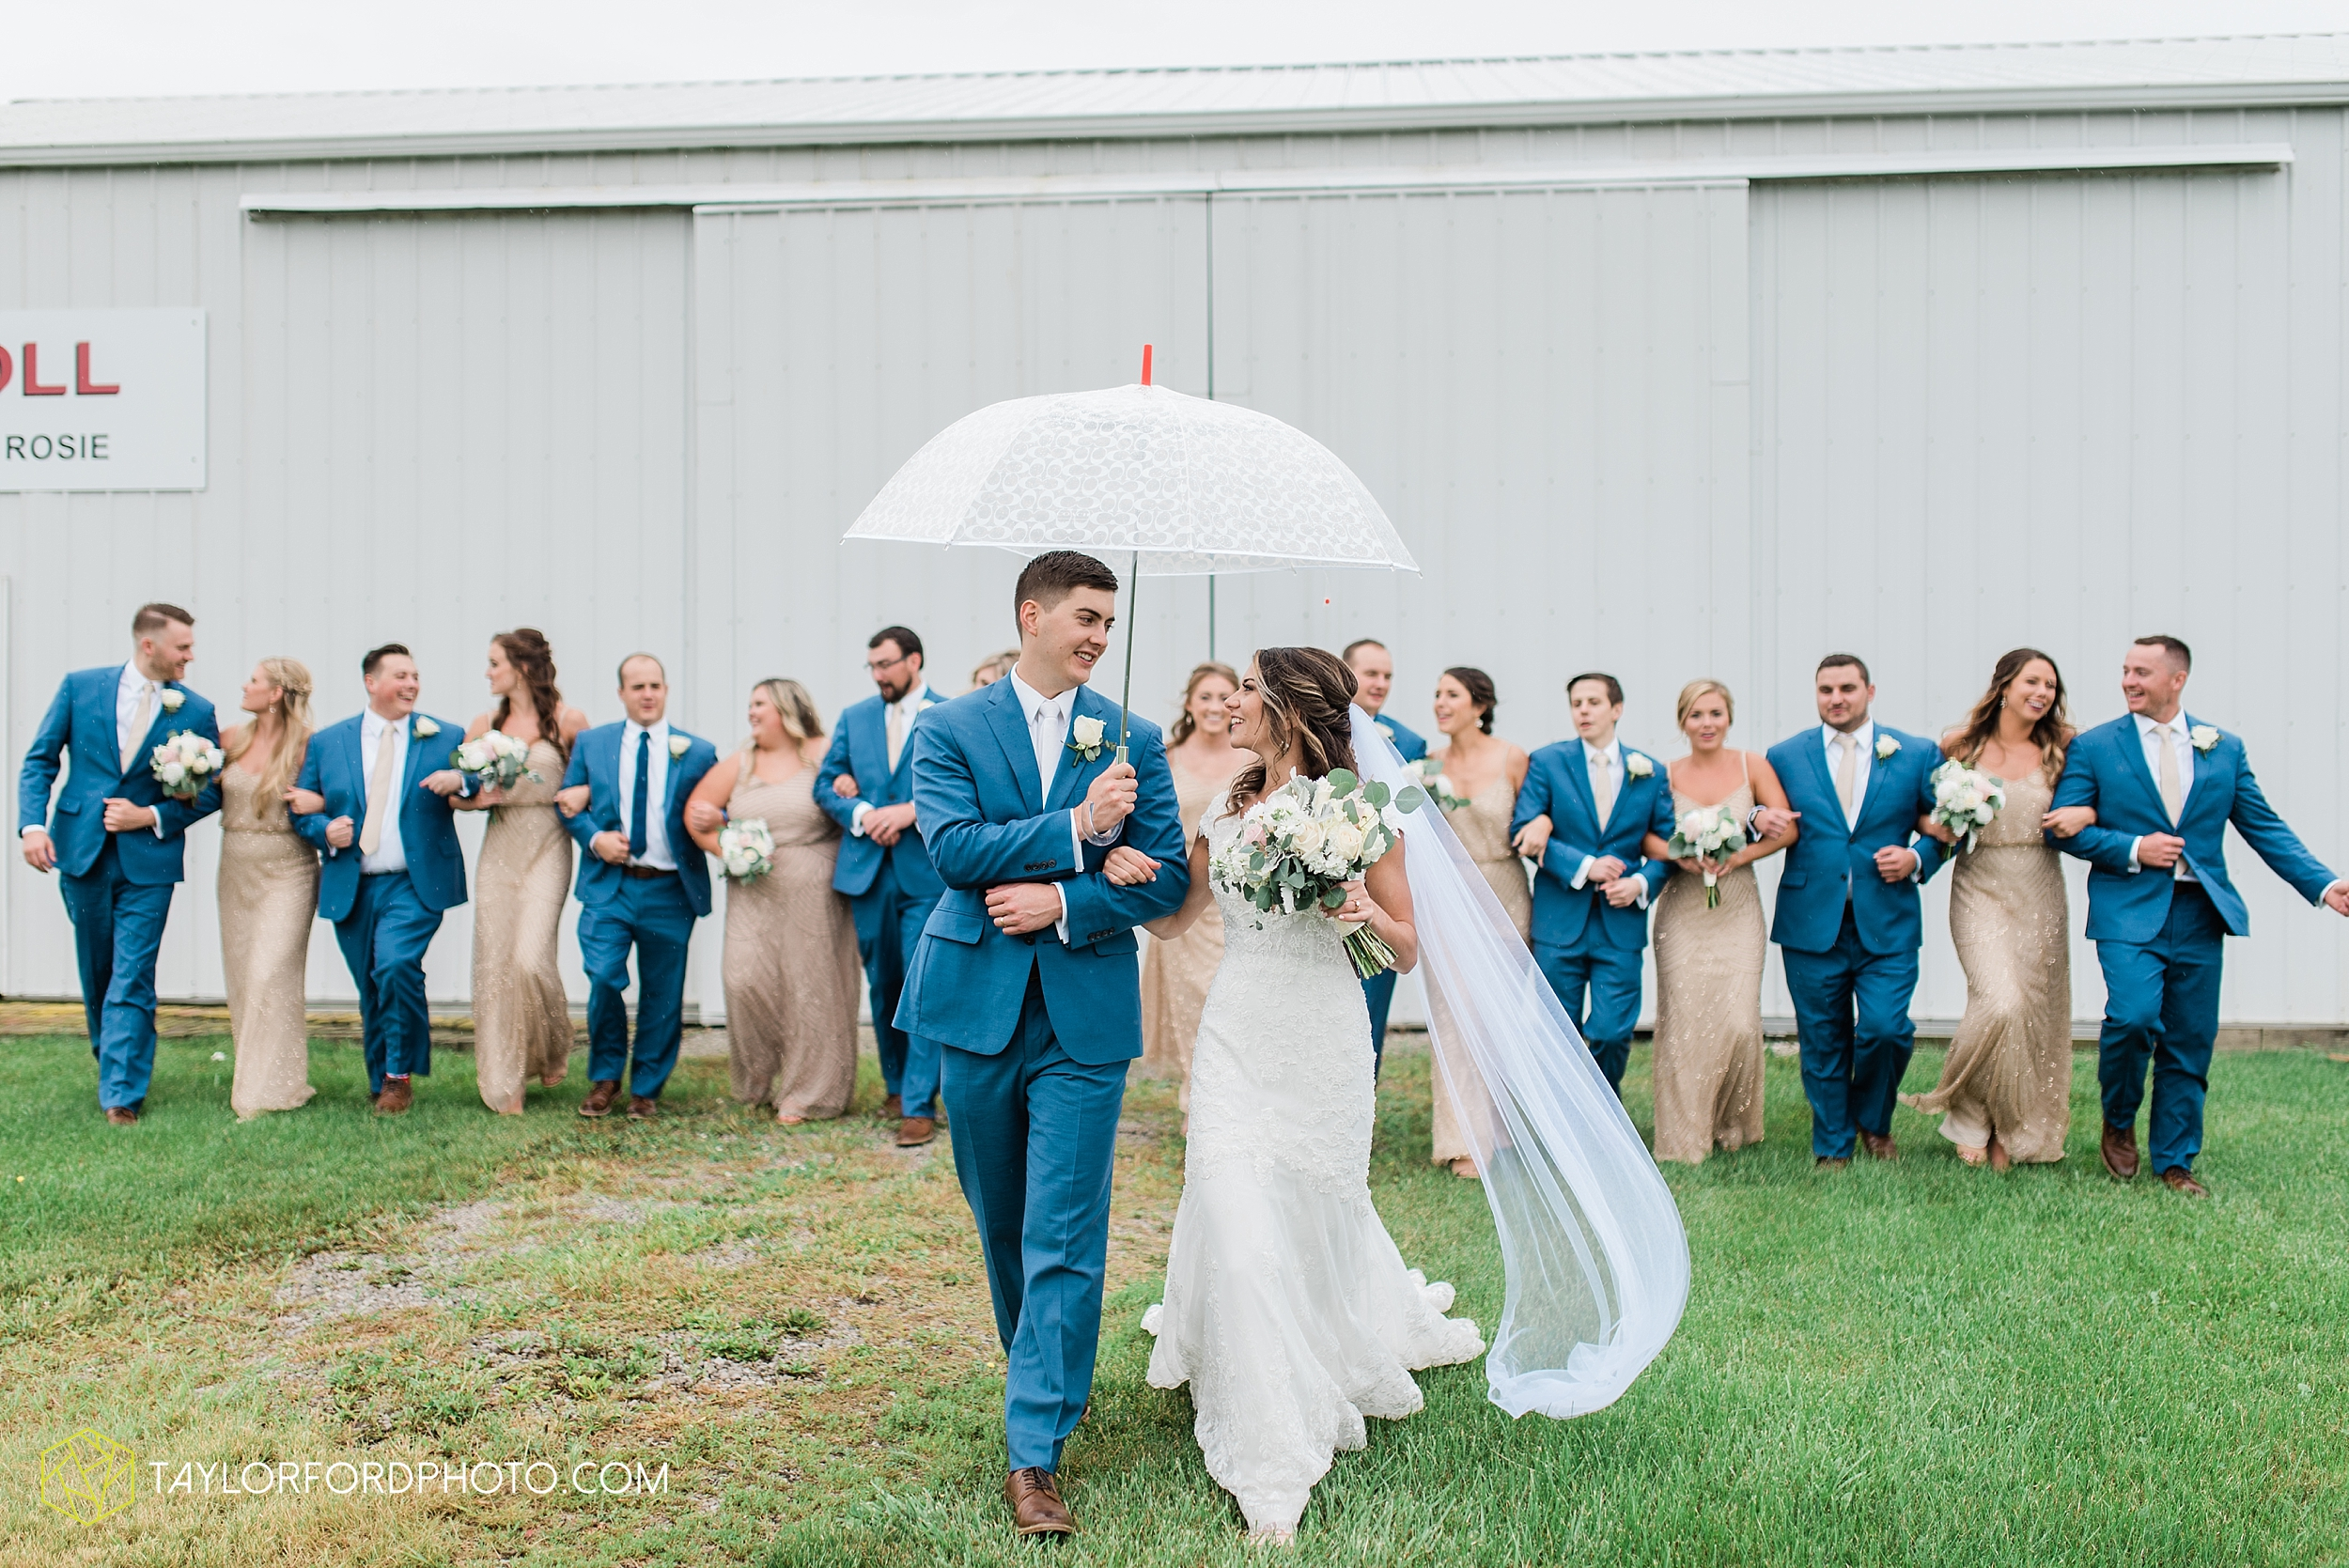 kacee-haden-sholl-second-story-saint-marys-knights-of-columbus-defiance-ohio-wedding-photographer-taylor-ford-photography_0163.jpg